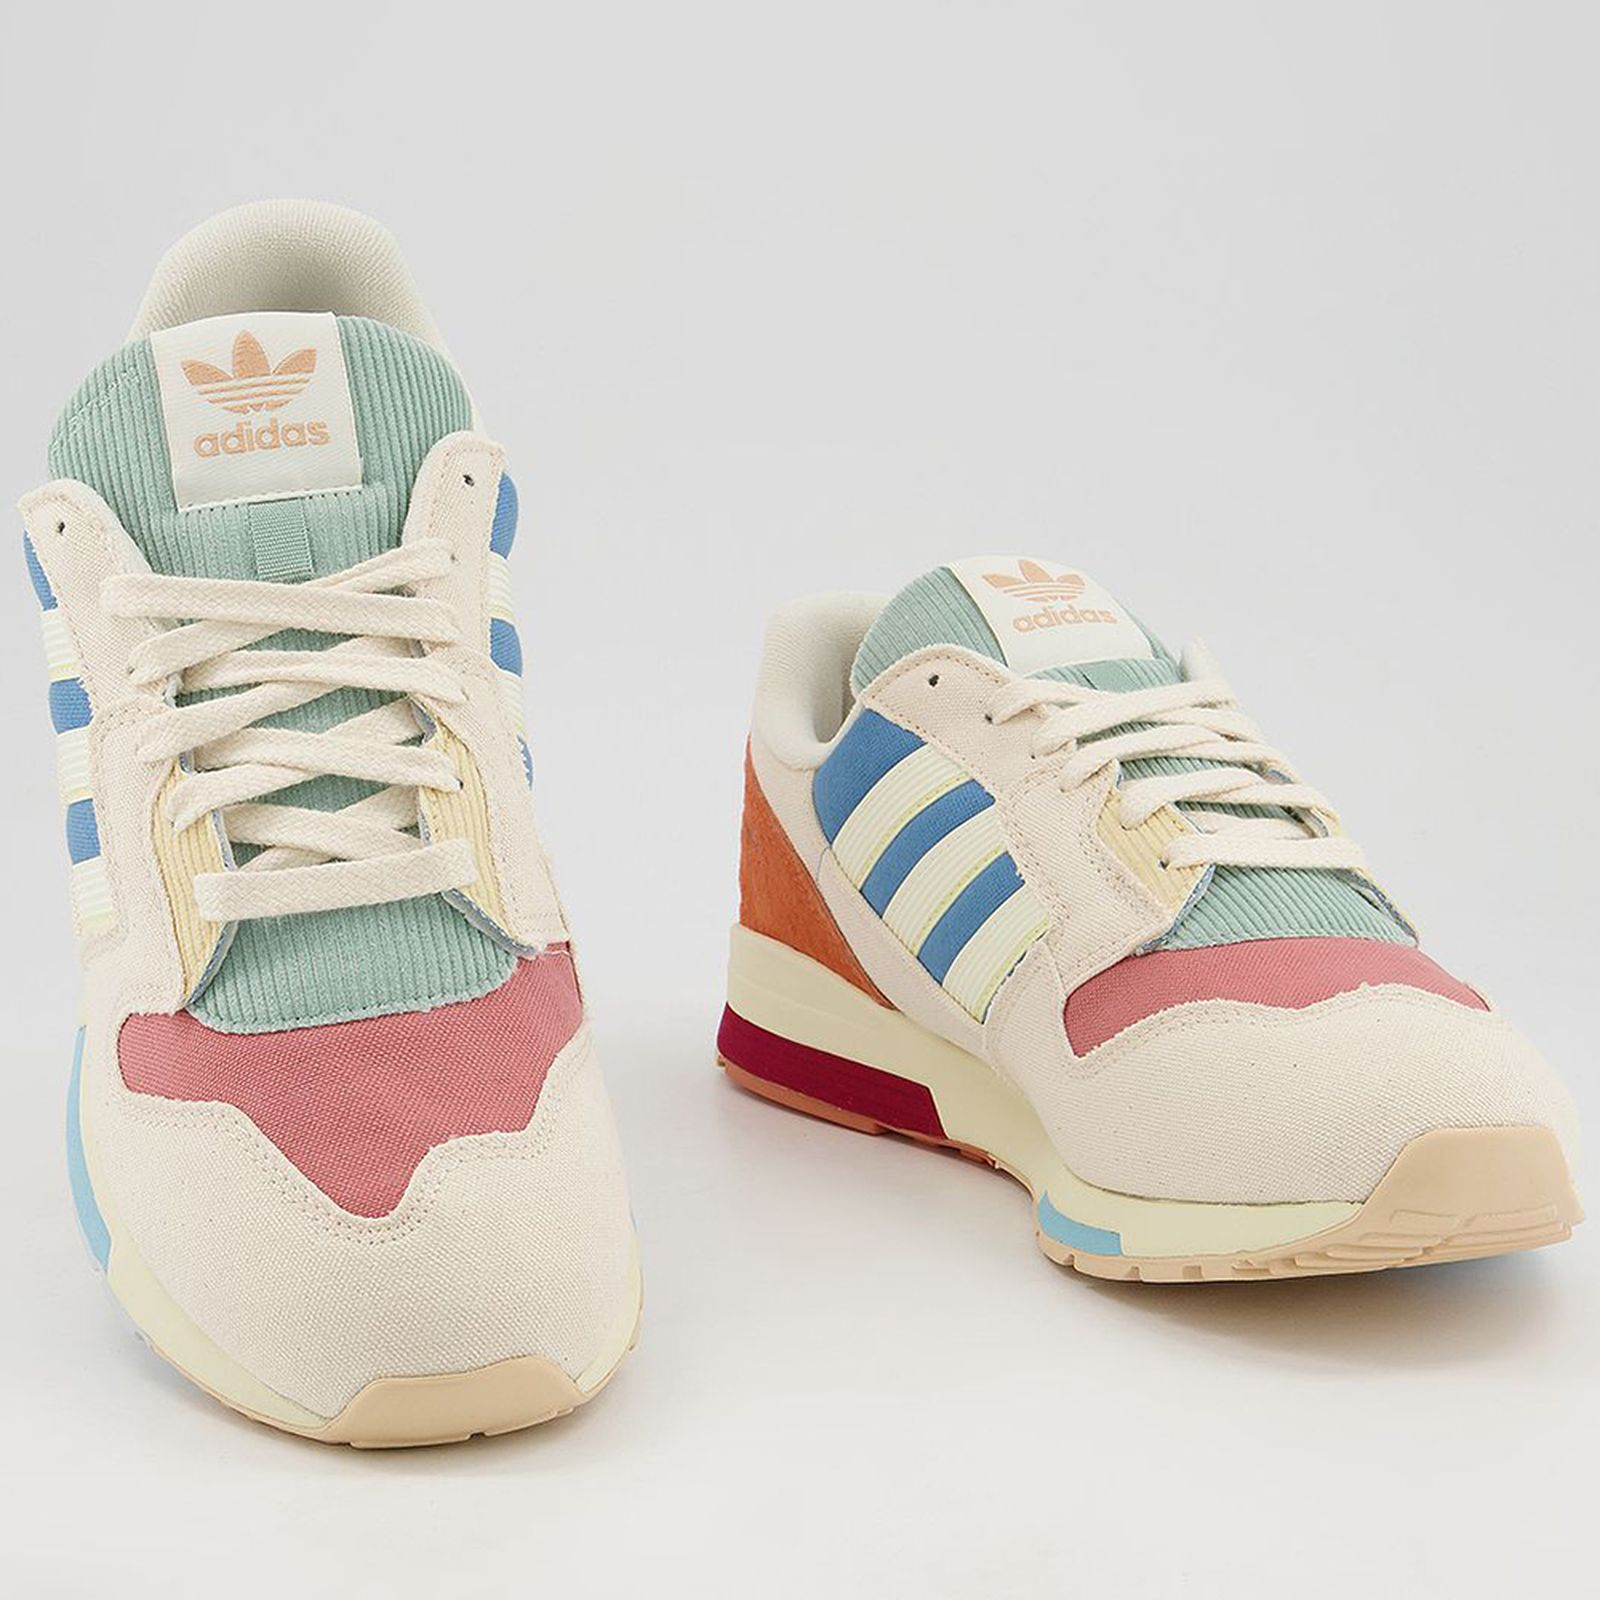 offspring-adidas-zx-420-la-release-date-price-02